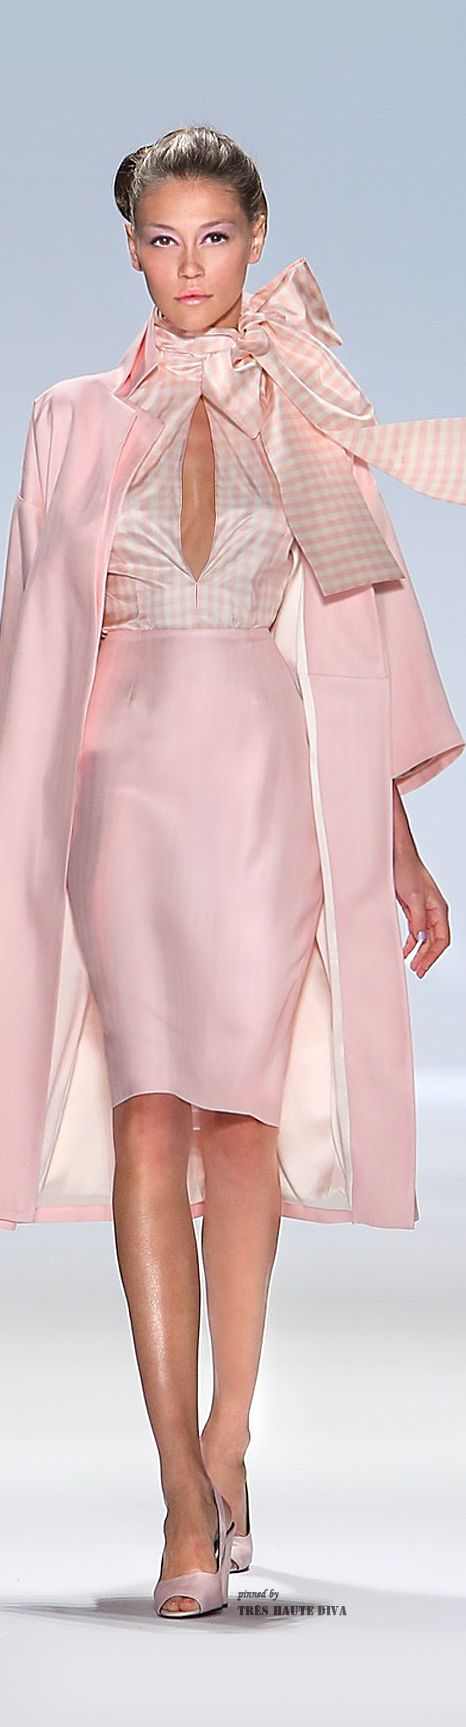 4829 best all things pink and beautiful images on pinterest